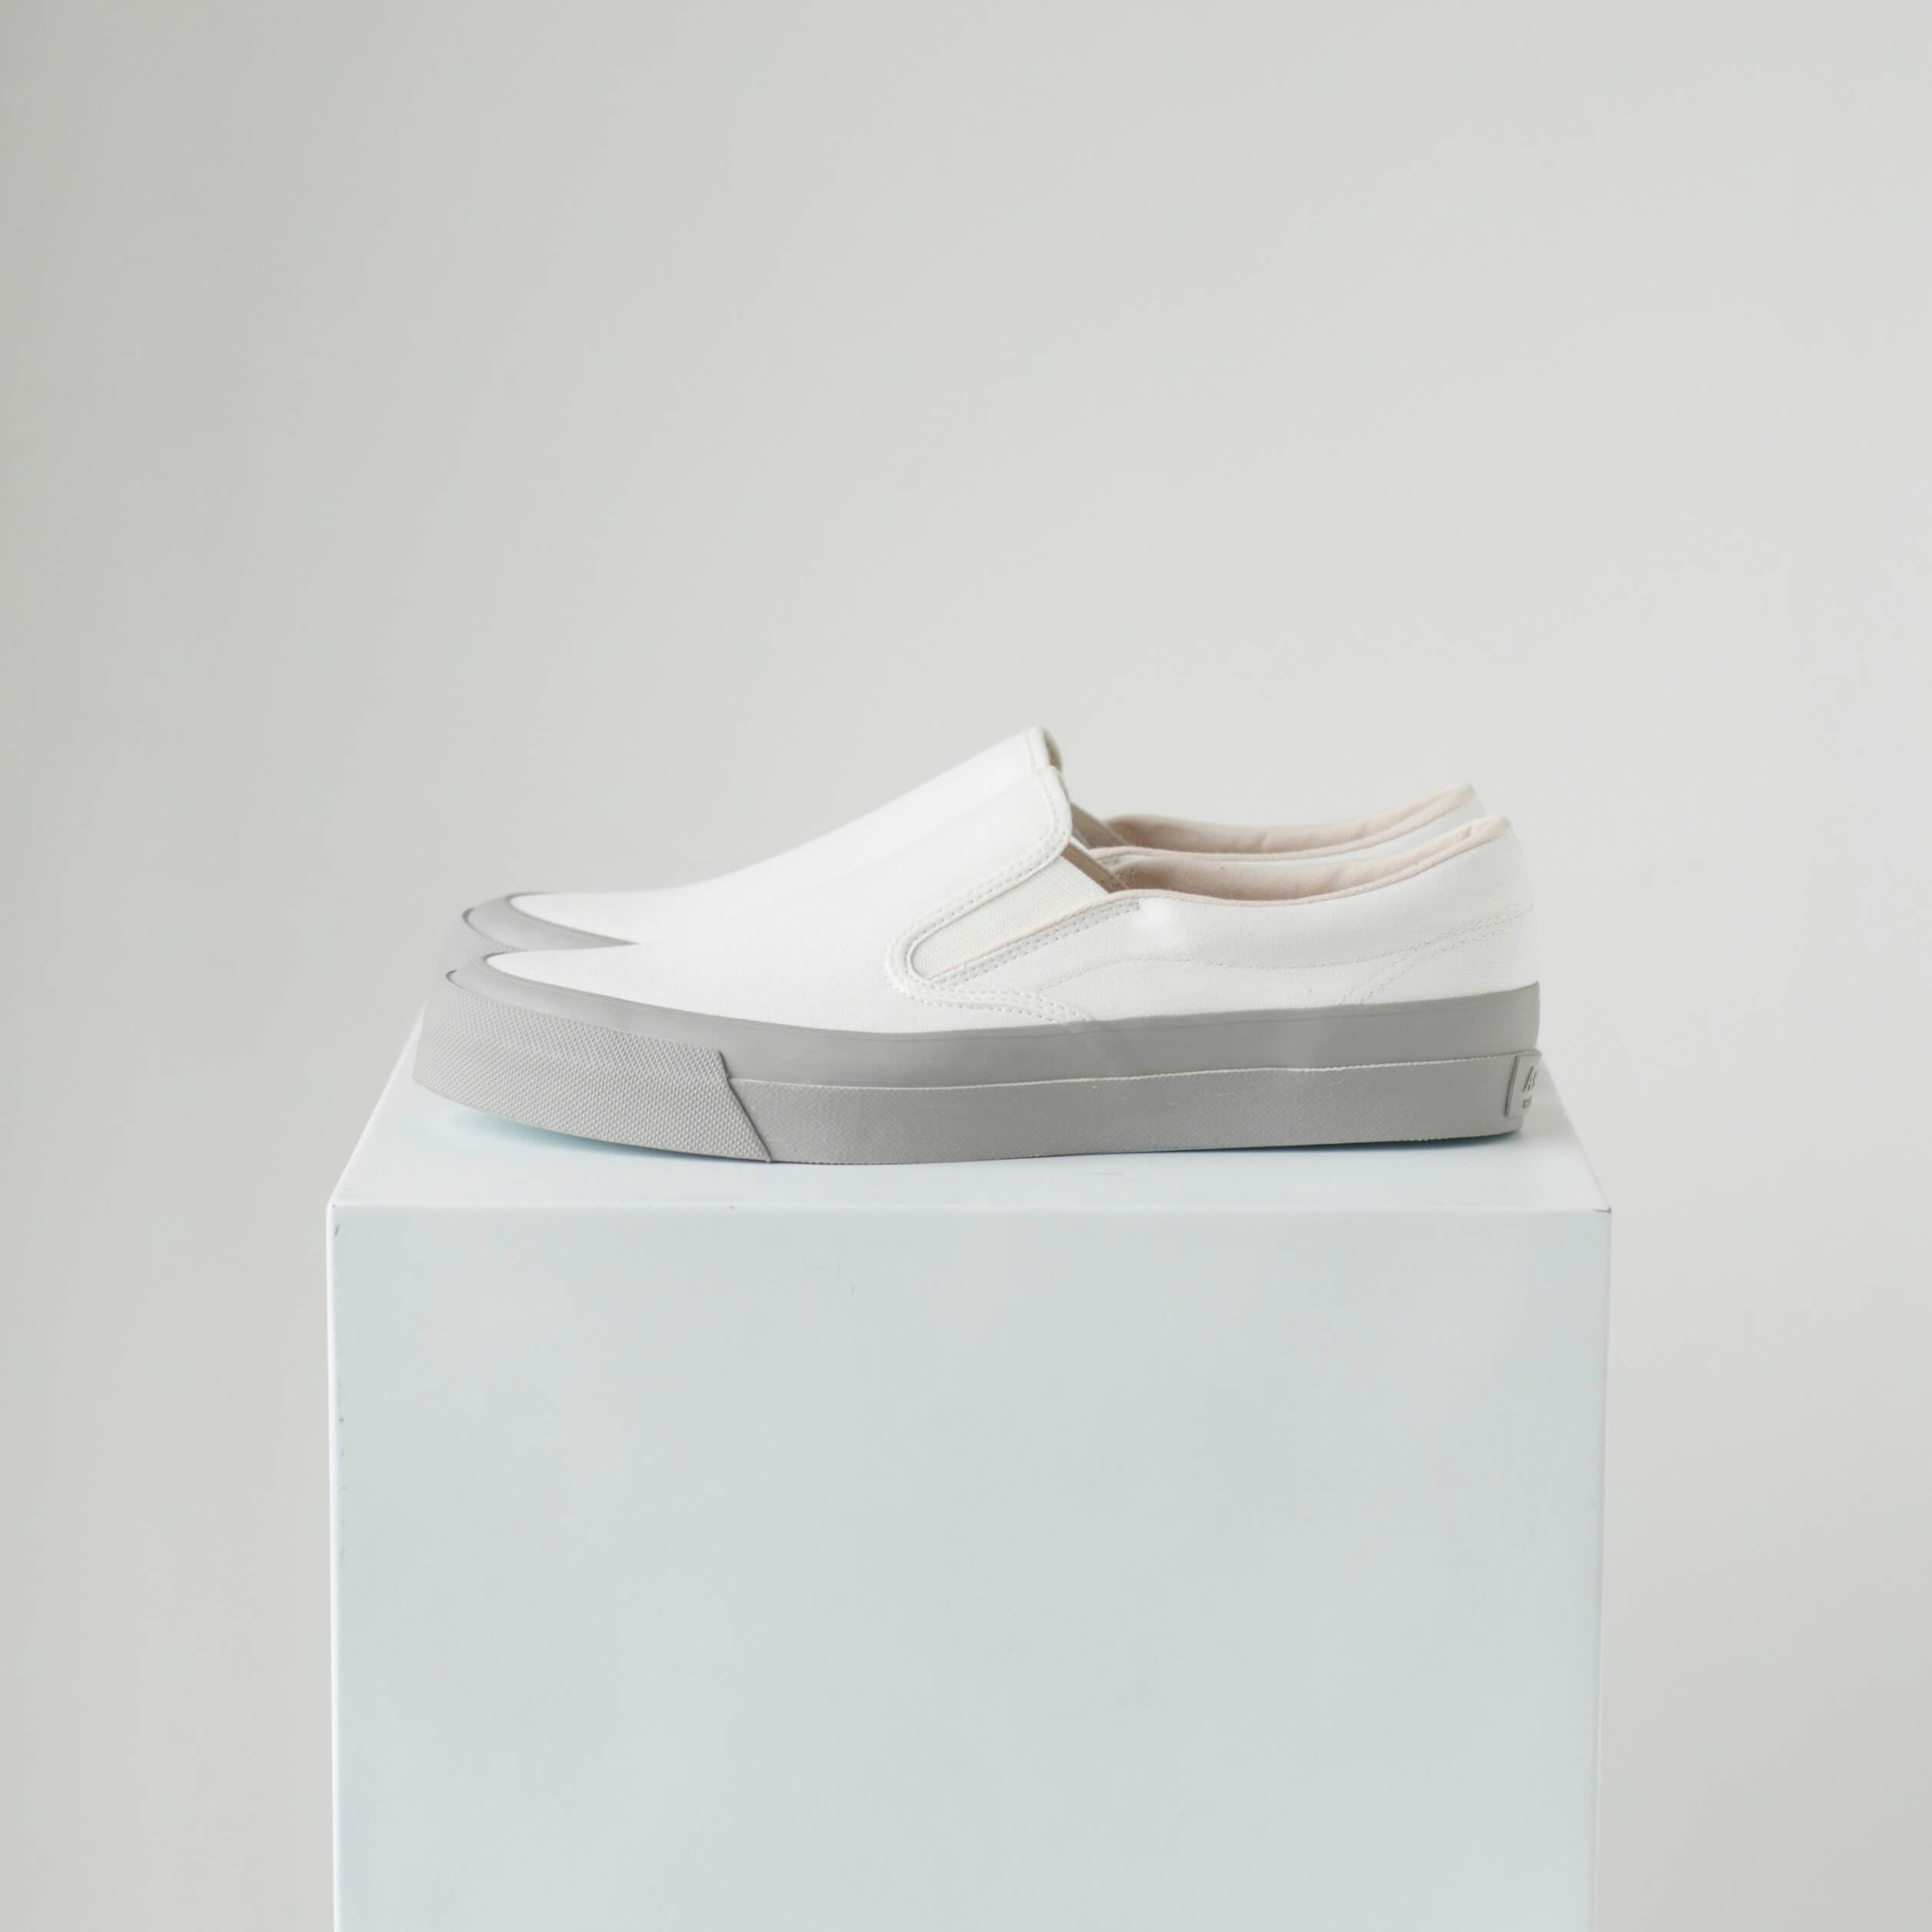 ASAHI DECK SLIP-ON - WHITE/GRAY